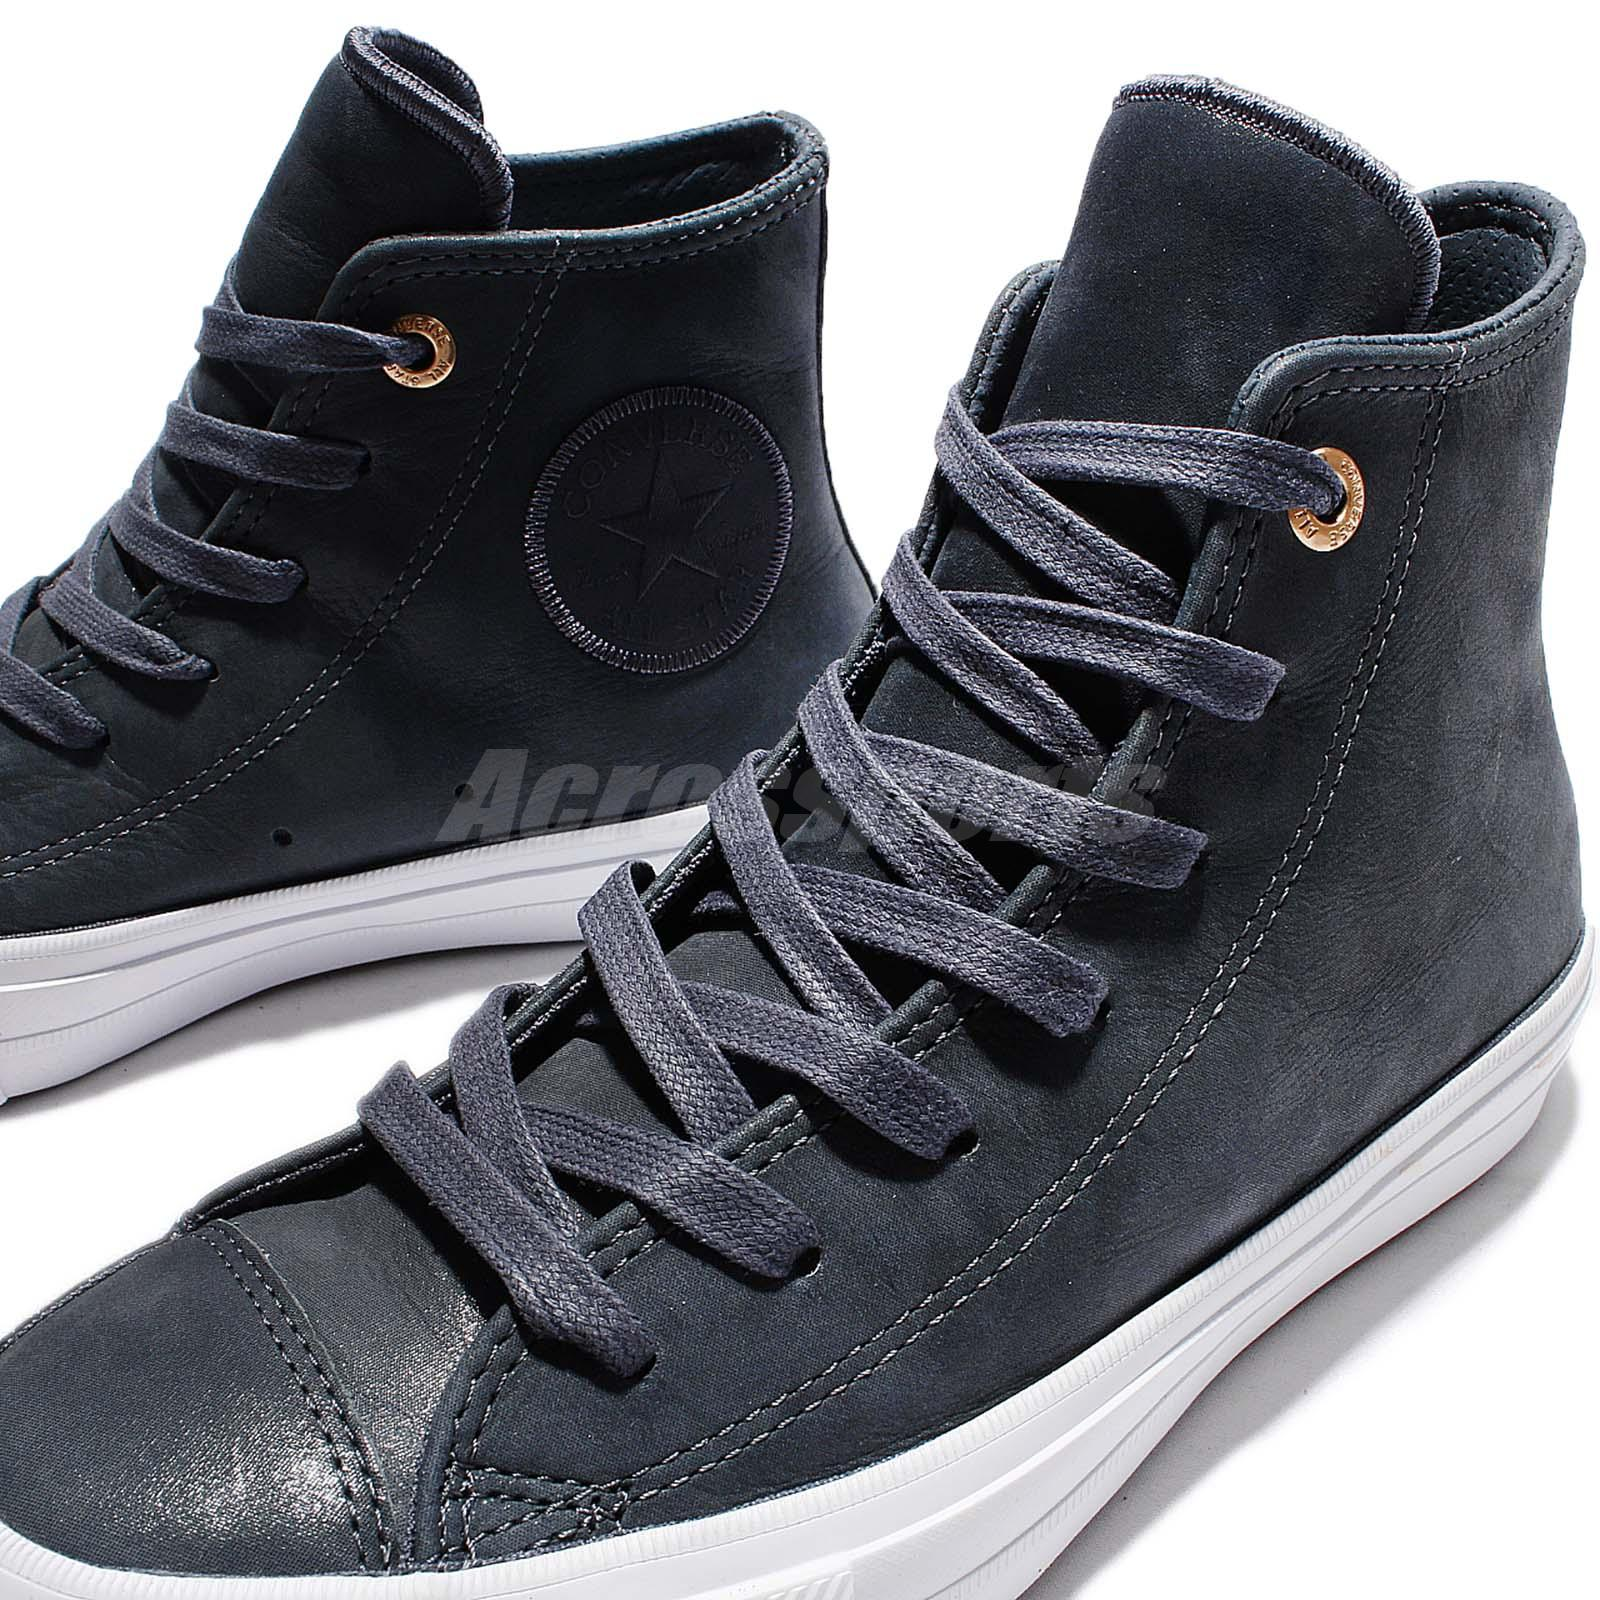 719fb9a9c529 Converse Chuck Taylor All Star II 2 Craft Leather Grey White Women ...